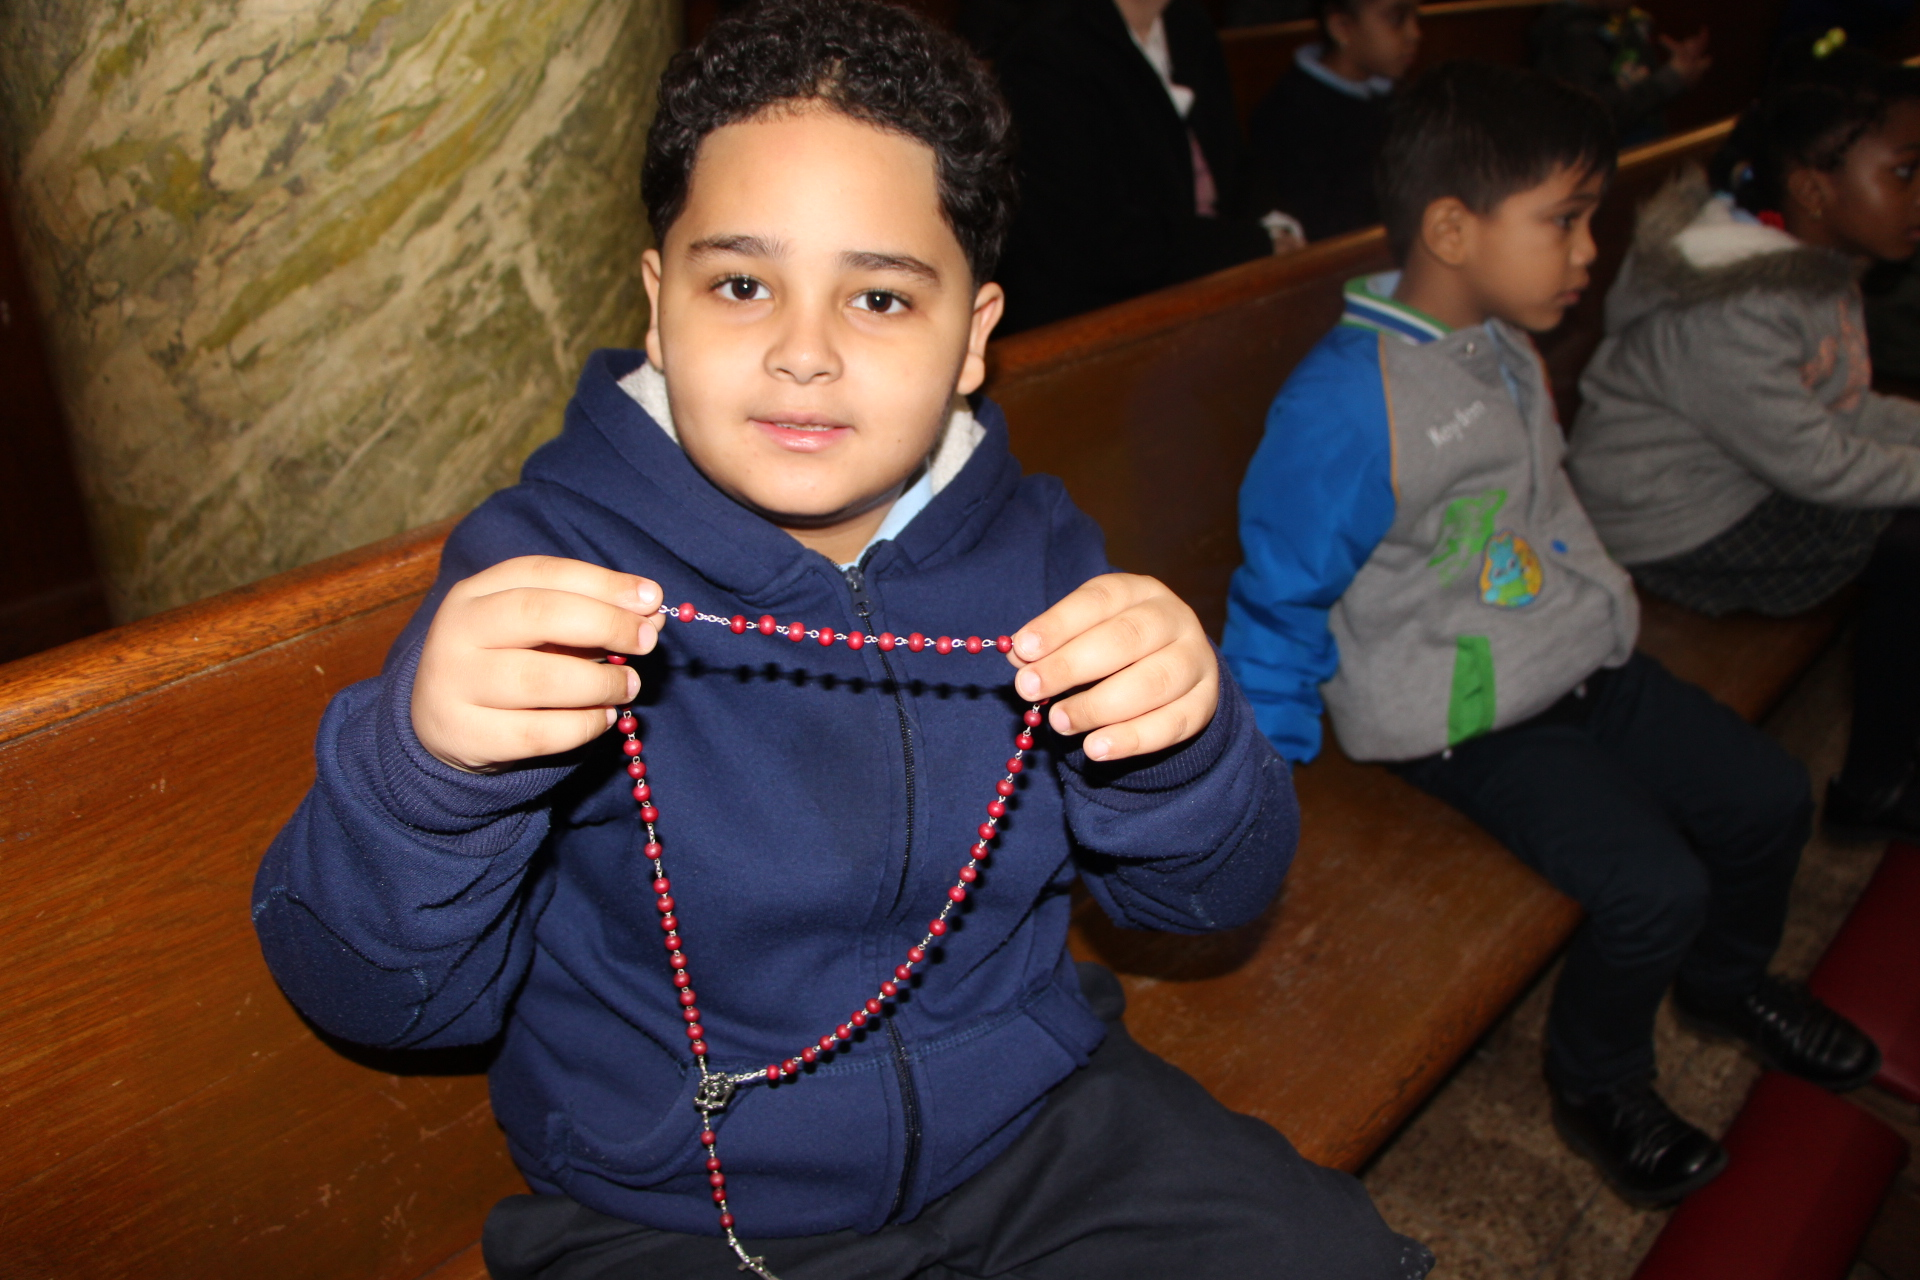 Blessed Sacrament Catholic Academy student displaying a rosary